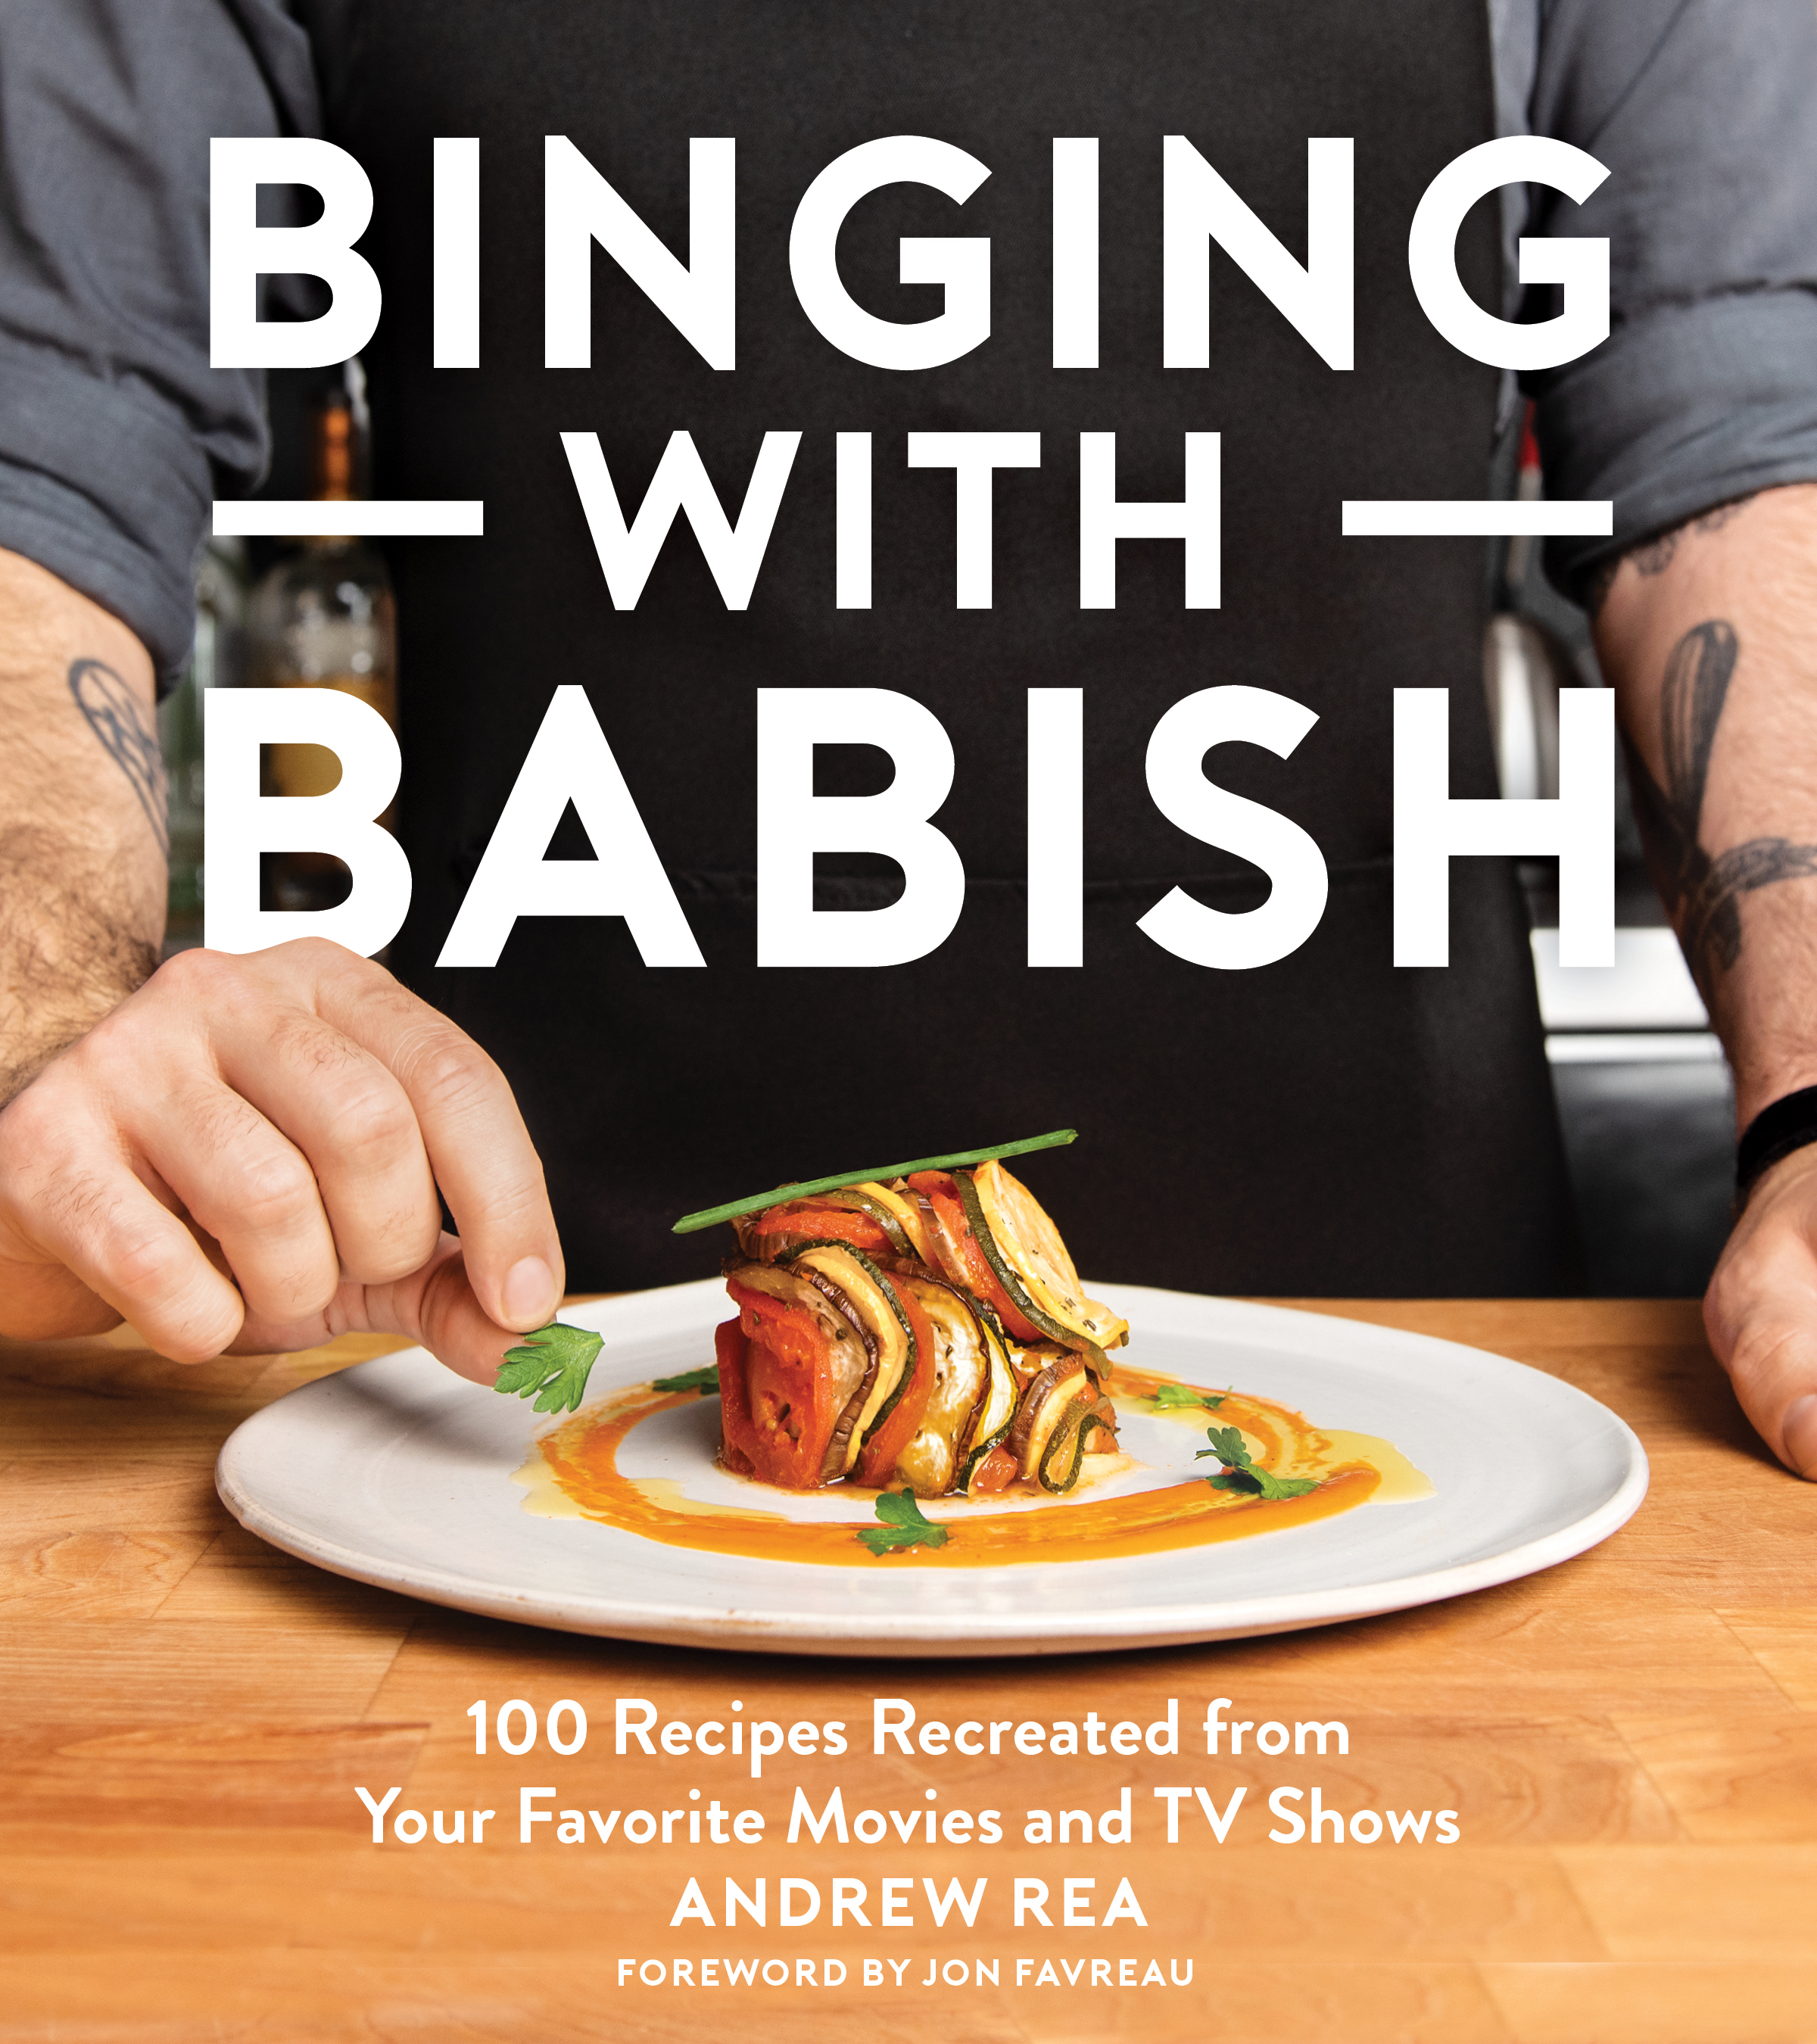 IT'S TIME - Well, it was bound to happen. With so much food being prepared, experimented upon, and (usually) eaten, it was inevitable that one fine day, I'd write down some recipes. But I've done that and so much more with the first 100 recipes featured in the official Binging with Babish Cookbook - take a look behind the scenes, see some goofy (and mouthwatering) photos, hear some happy and sad stories, and read a touching foreword by the man himself, Jon Favreau. Preorder your copy now for some juicy bonus content before the book drops on October 22nd!